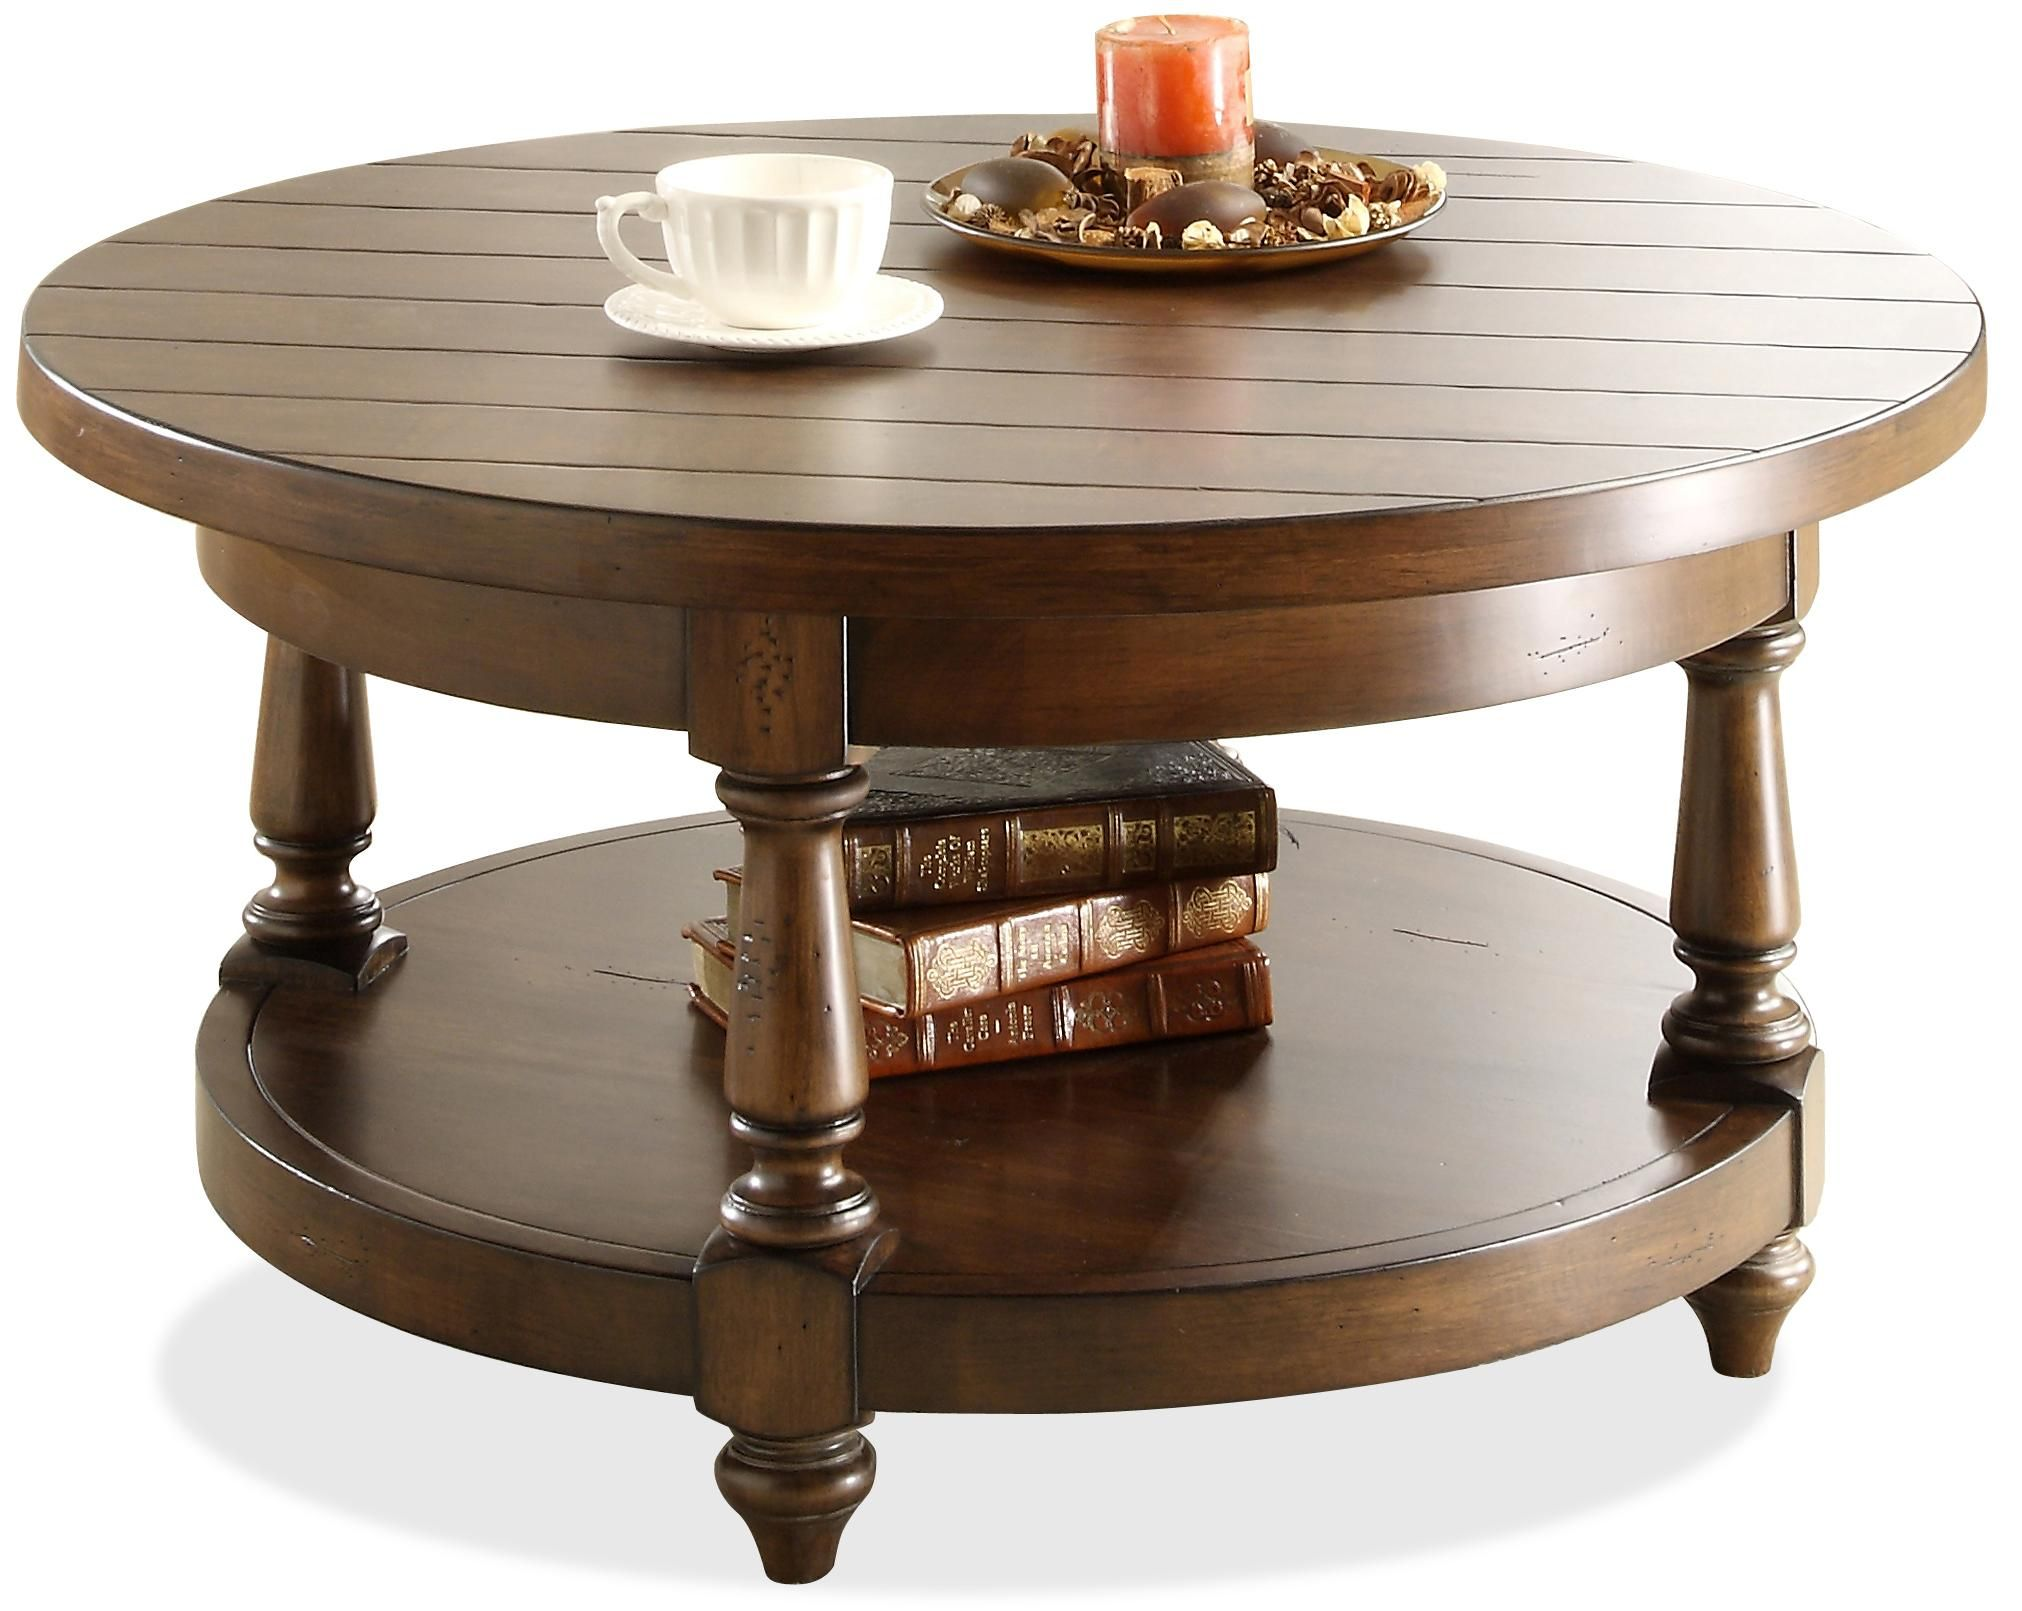 Newburgh Round Cocktail Table By Riverside Furniture Coffee Table Round Coffee Table Riverside Furniture [ 1611 x 2022 Pixel ]